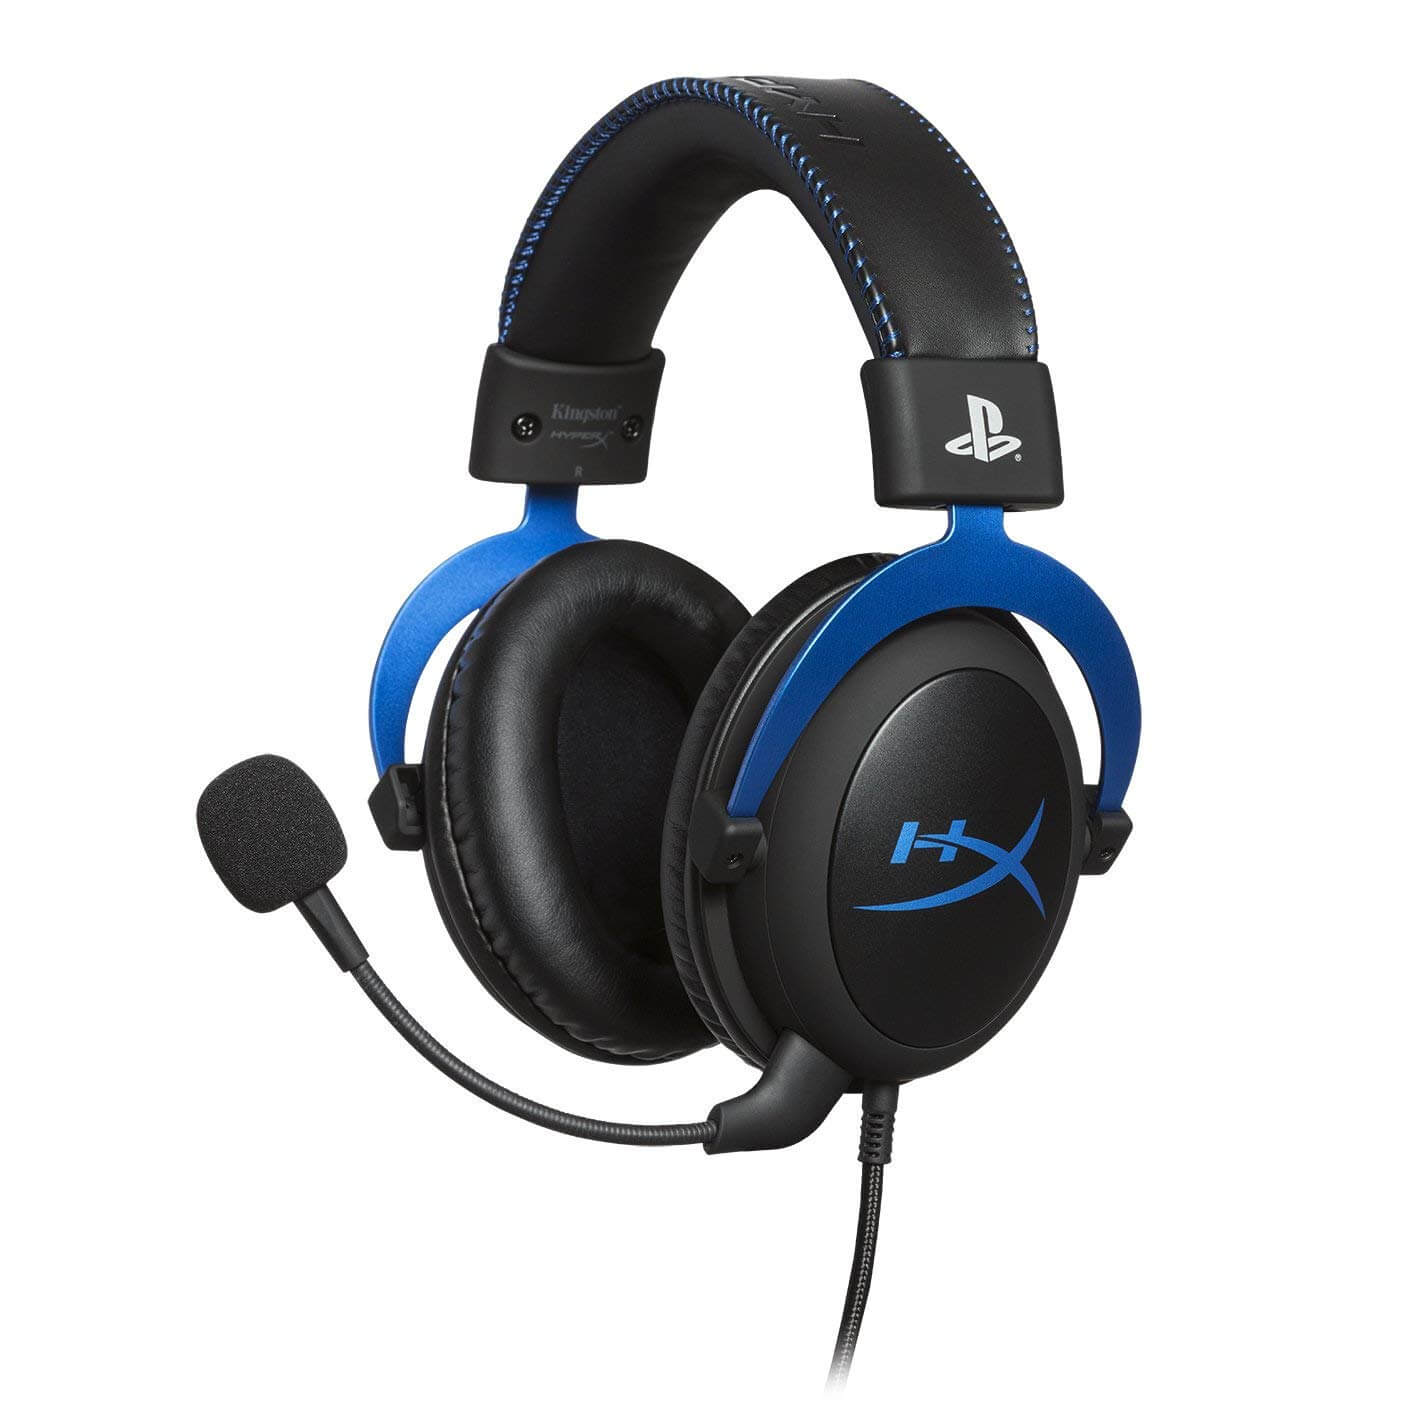 20 Best Gaming Headsets Detailed Reviews And Guide